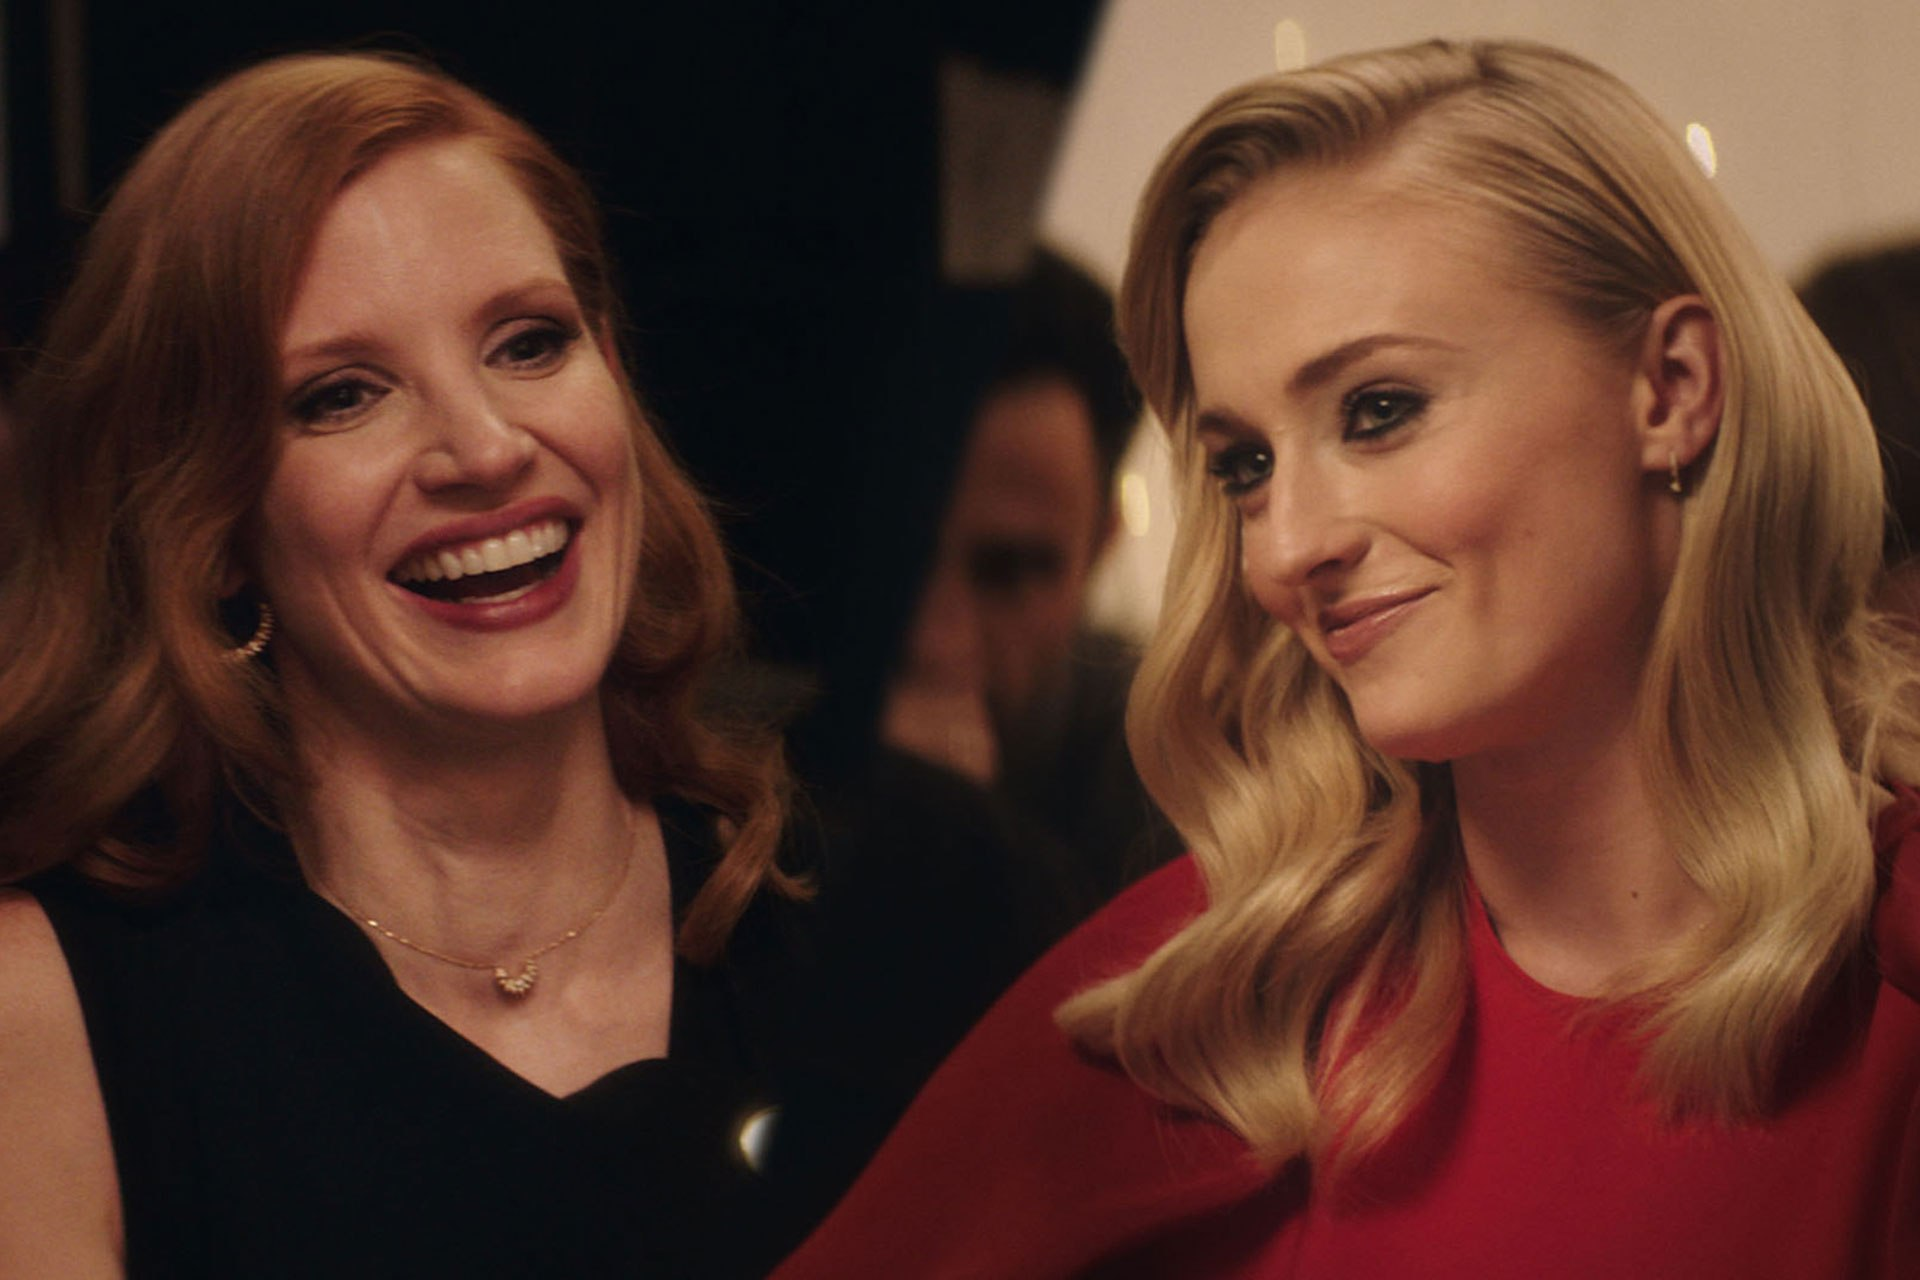 Watch Sophie Turner and Jessica Chastain talk friendship, past roles and future plans over dinner